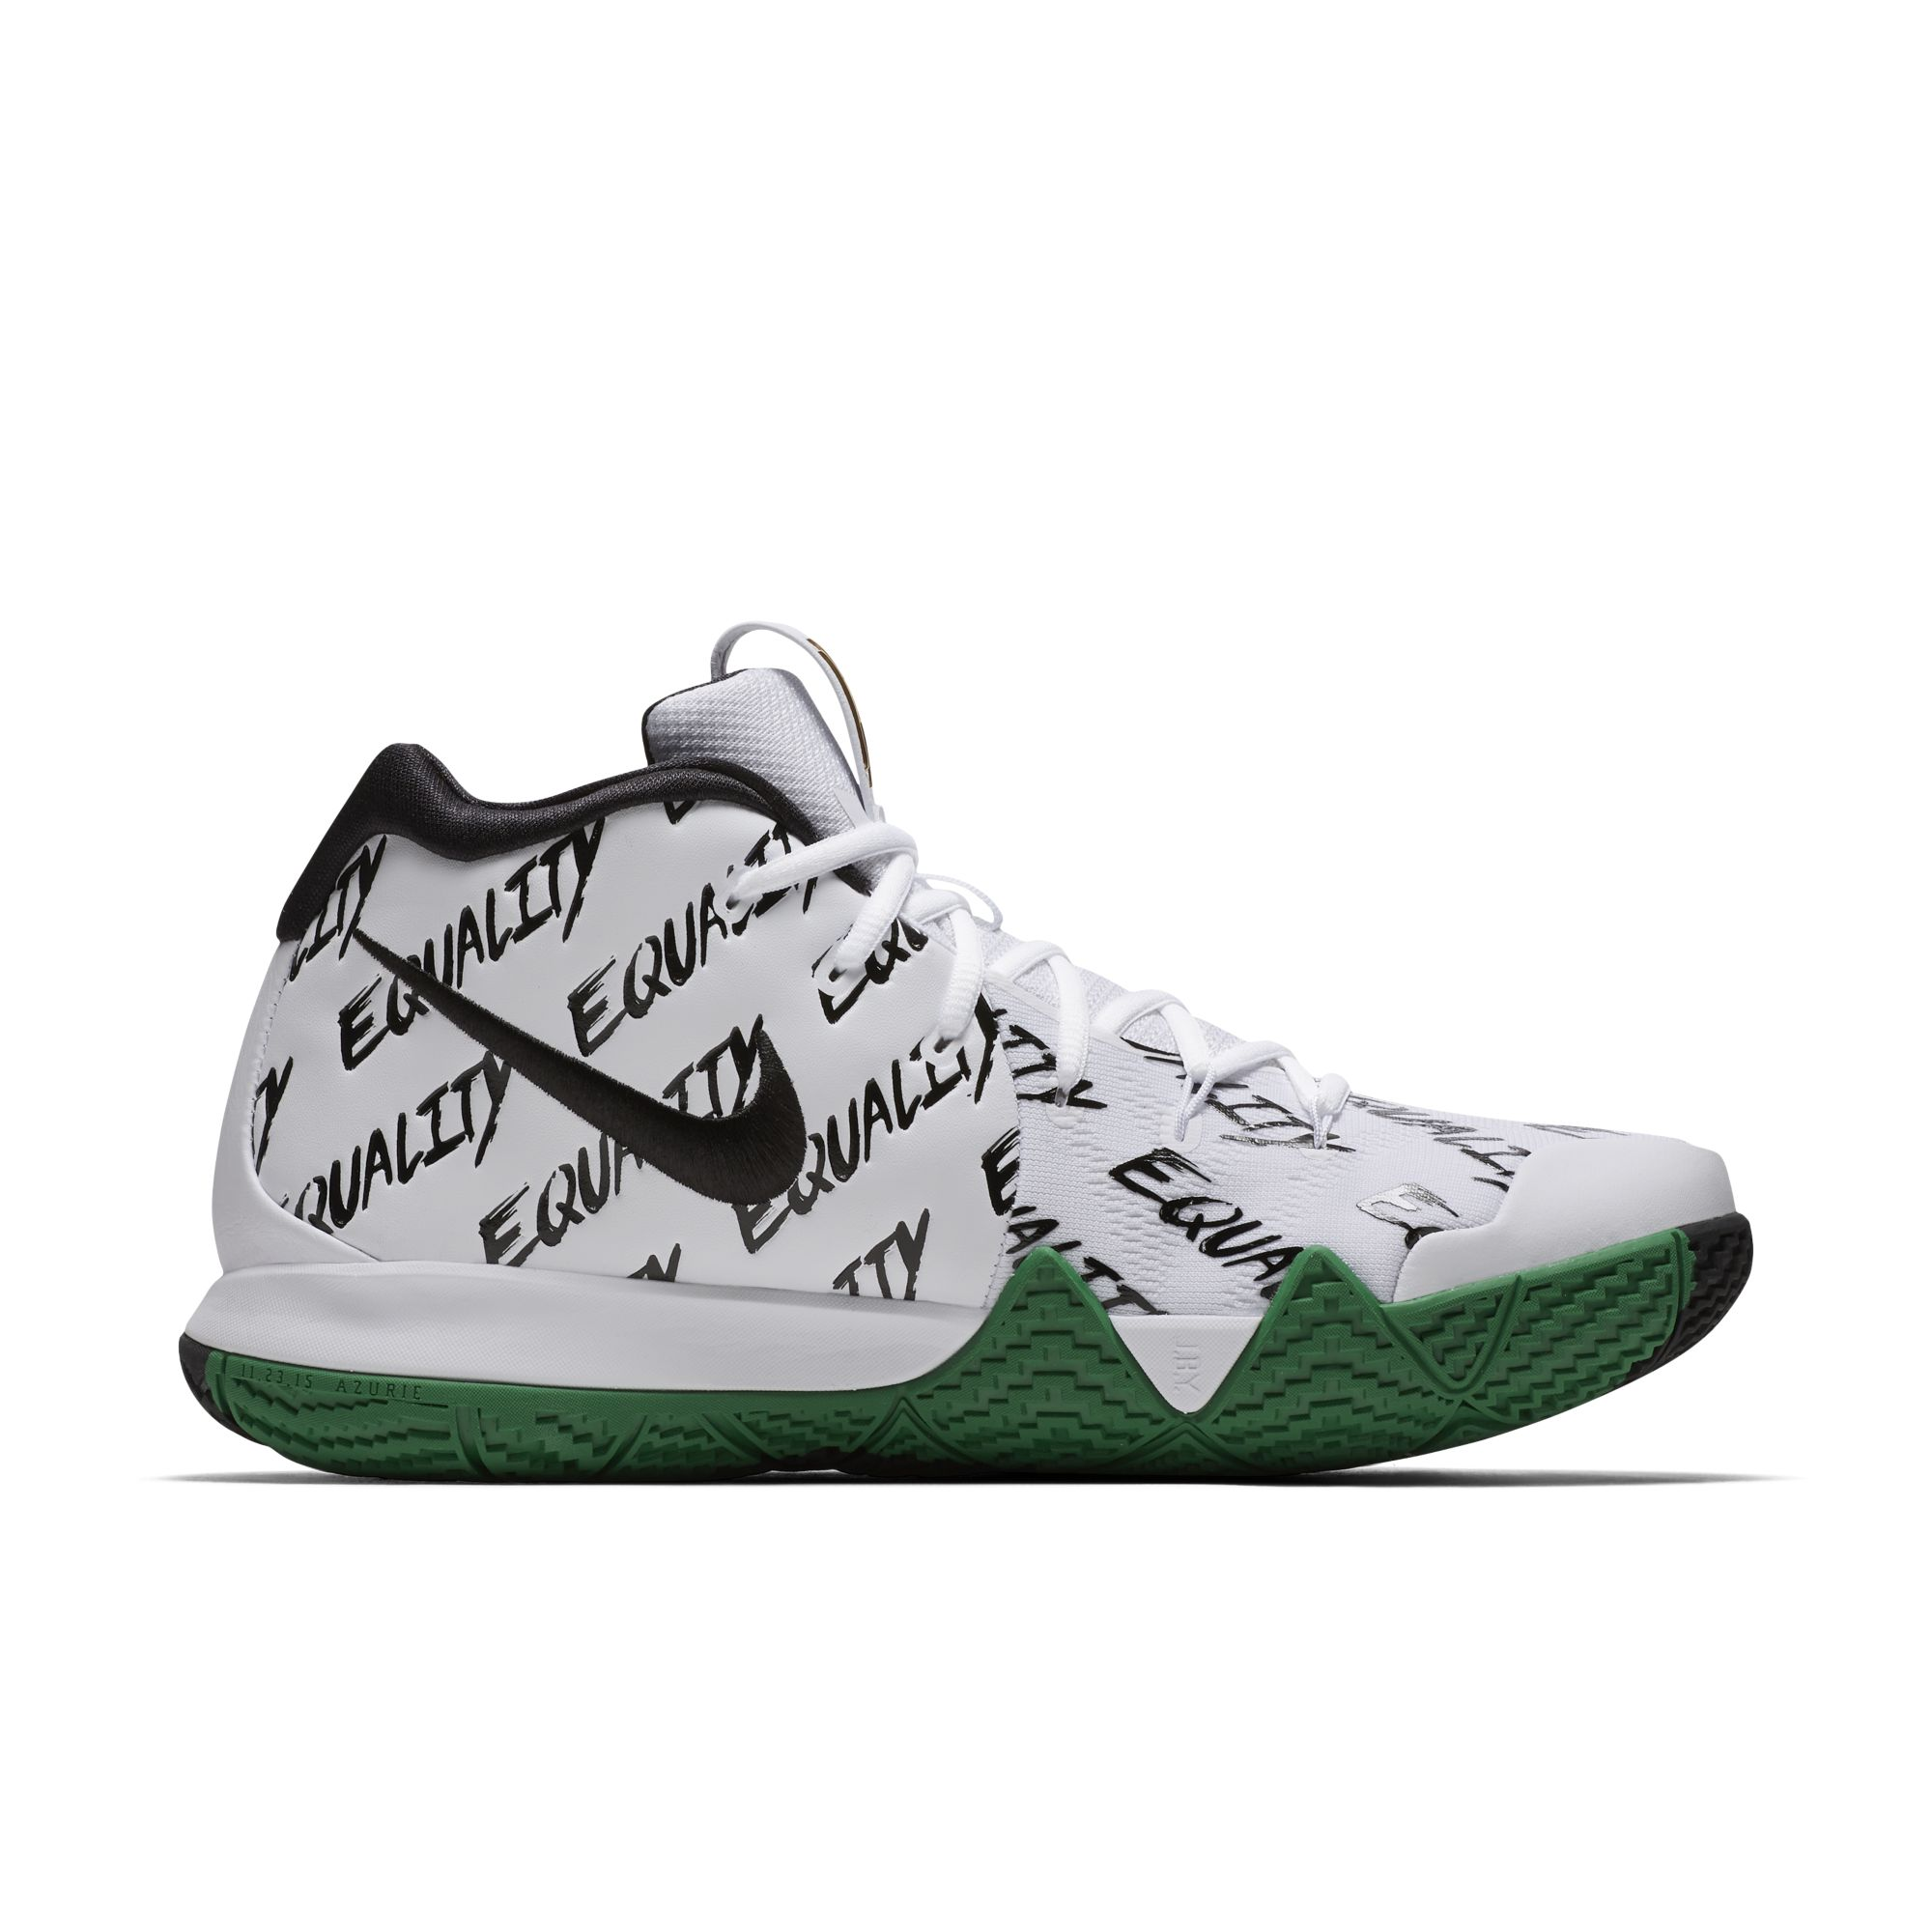 58d4fa4b190 ... low price nike kyrie 4 bhm official 4 7185a 1d3c6